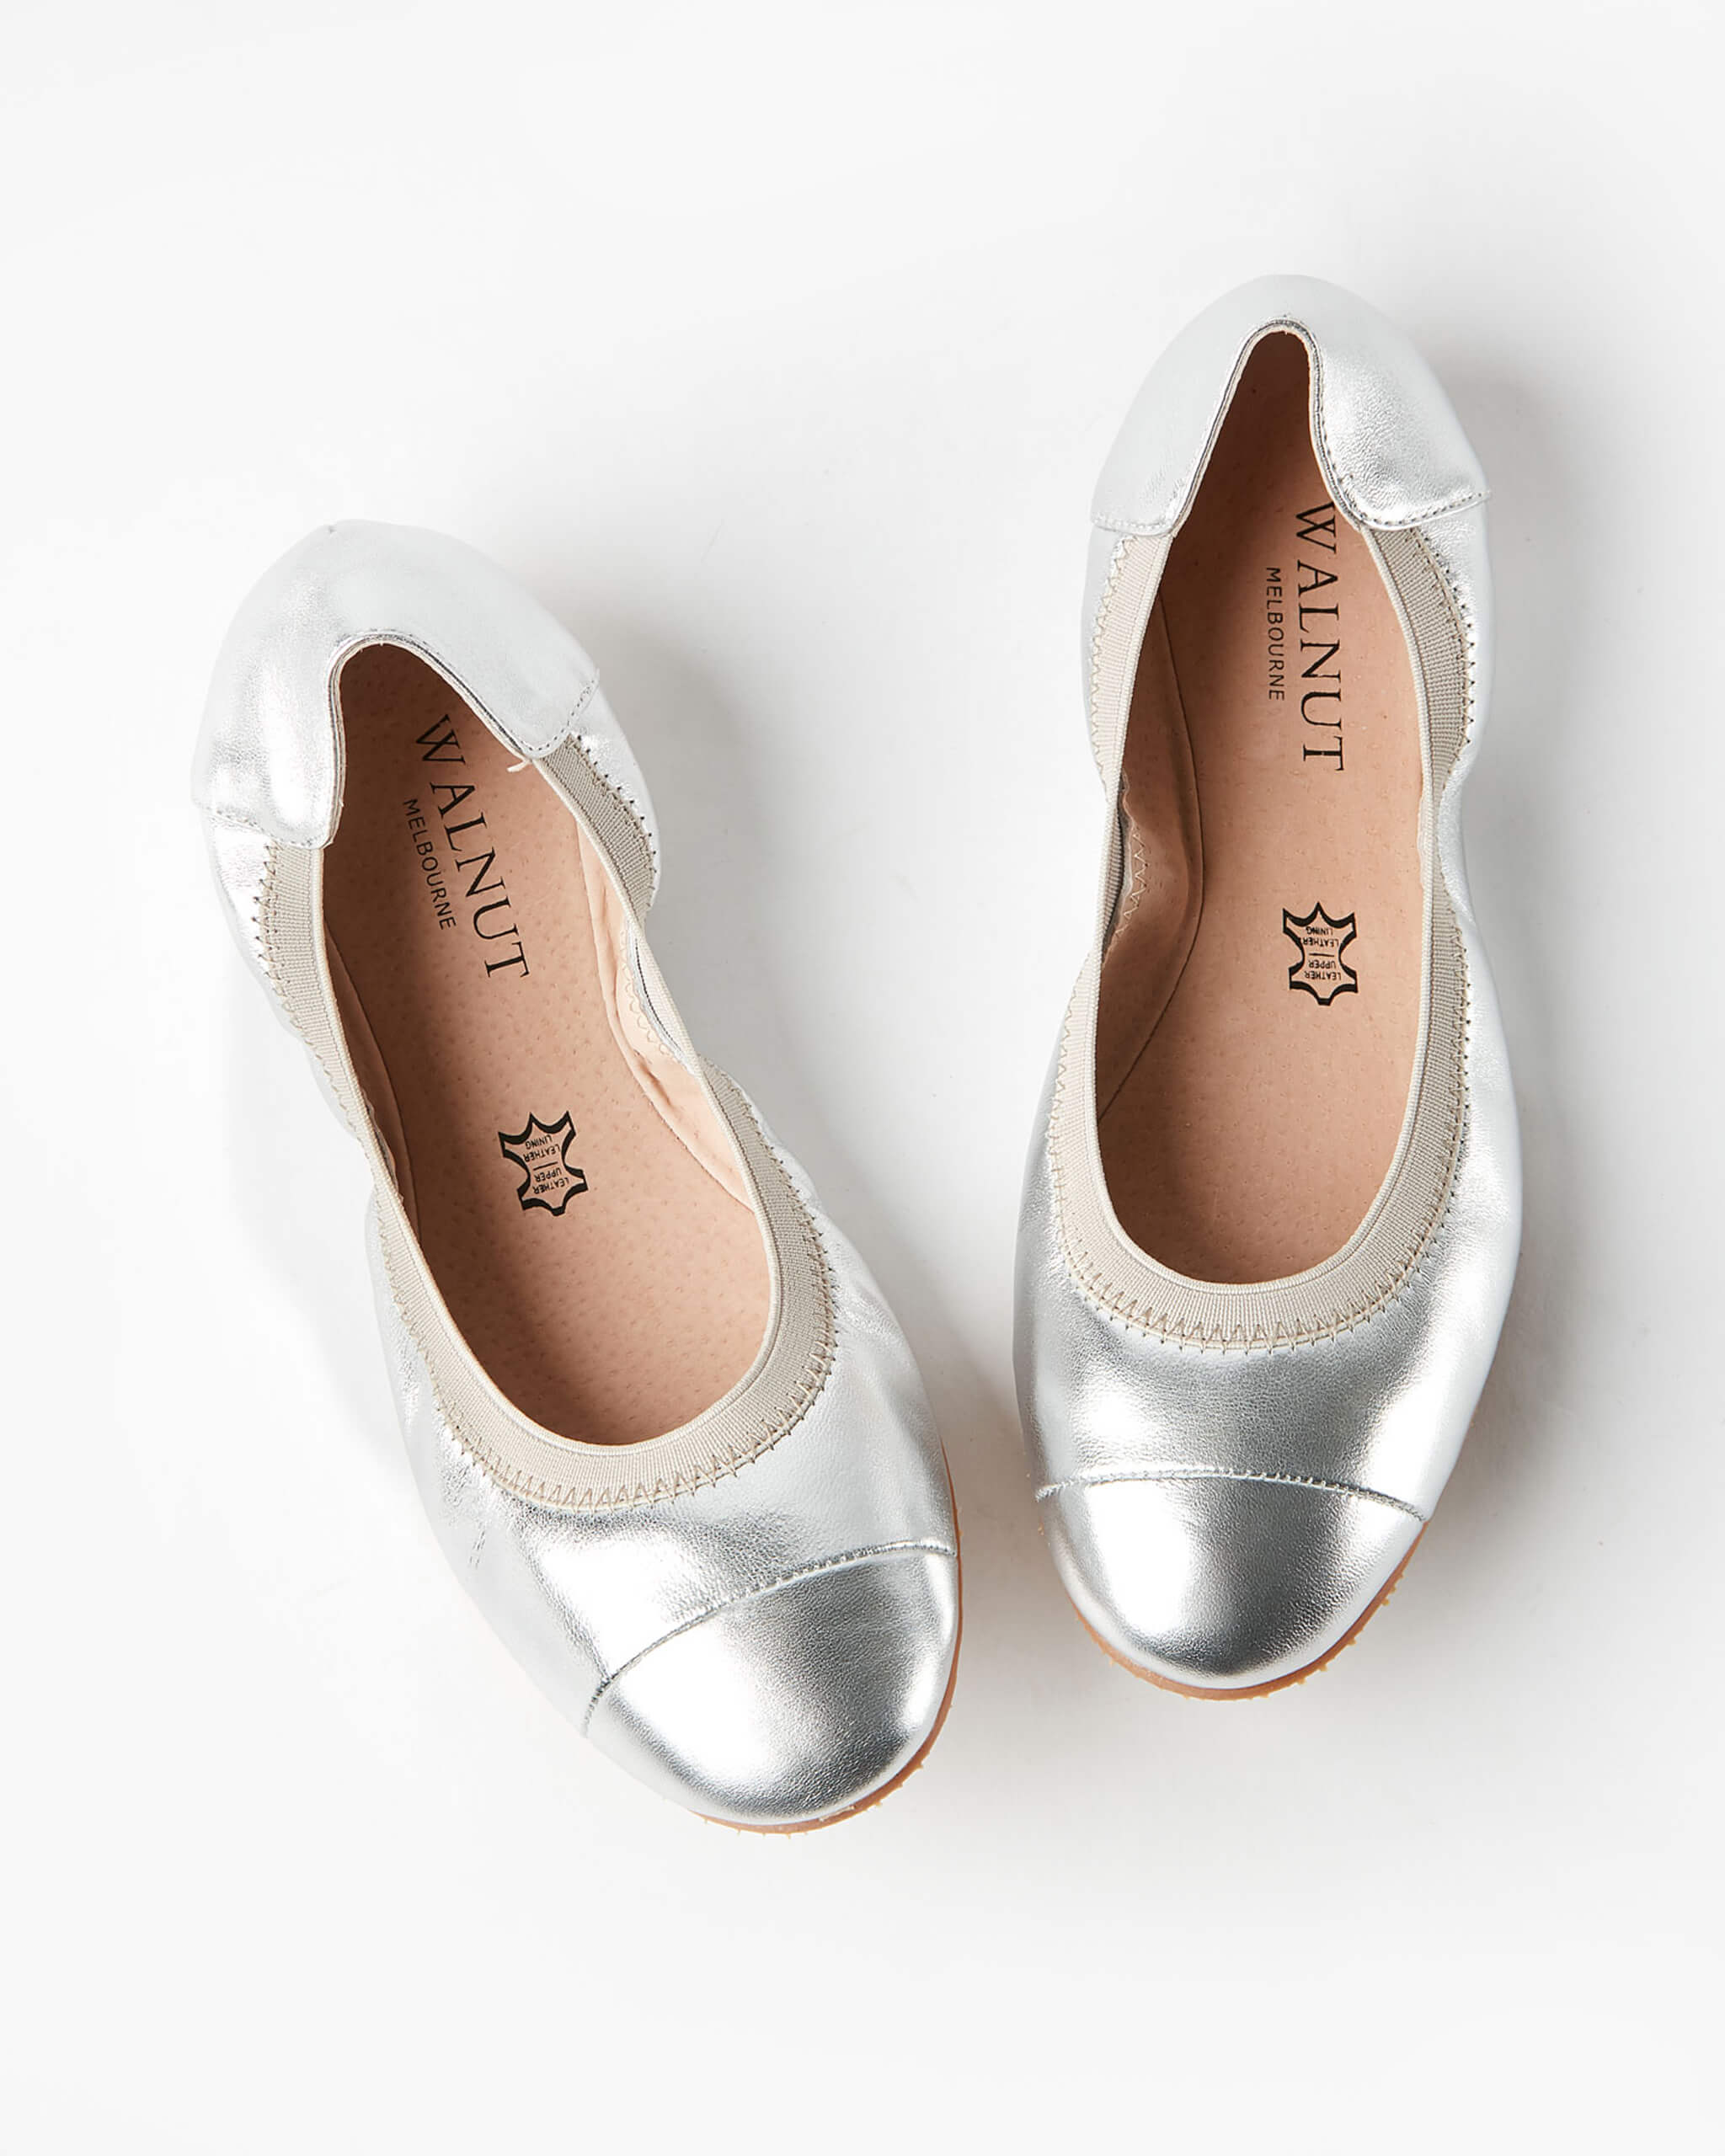 Ava Leather Ballet Flat - Silver